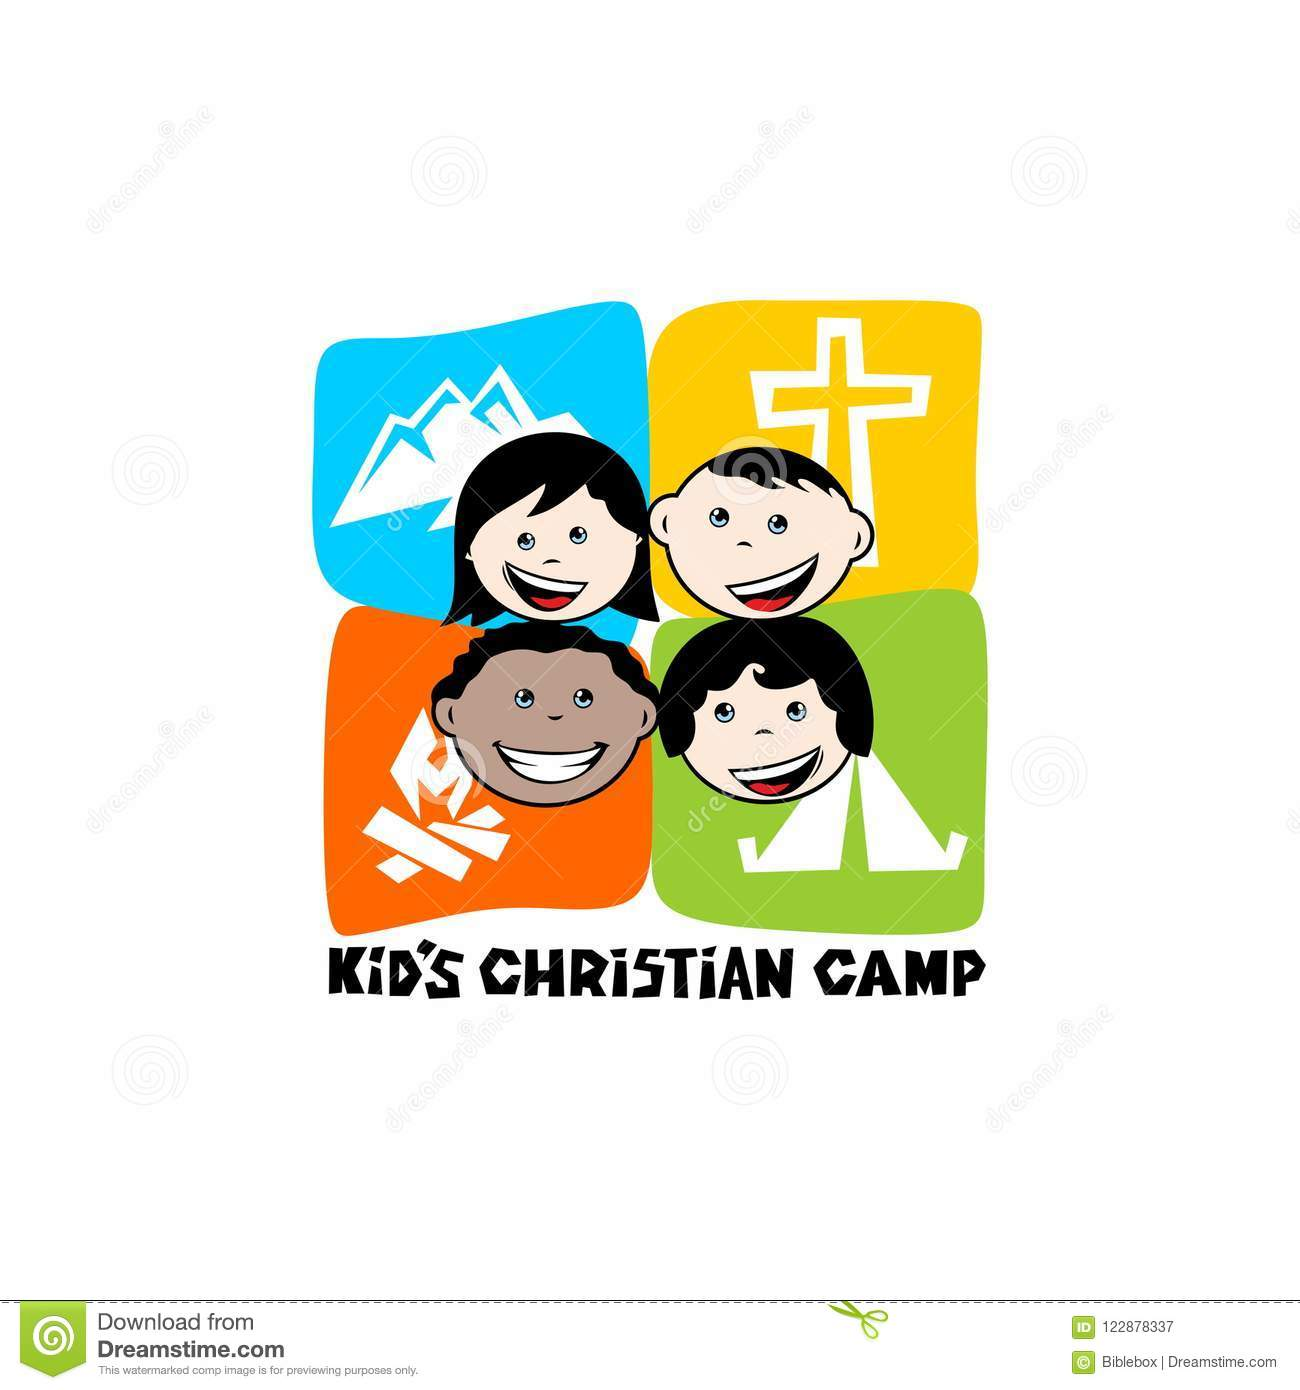 Logo of kid`s Christian camp. Mountains, cross and tent, kiddies.